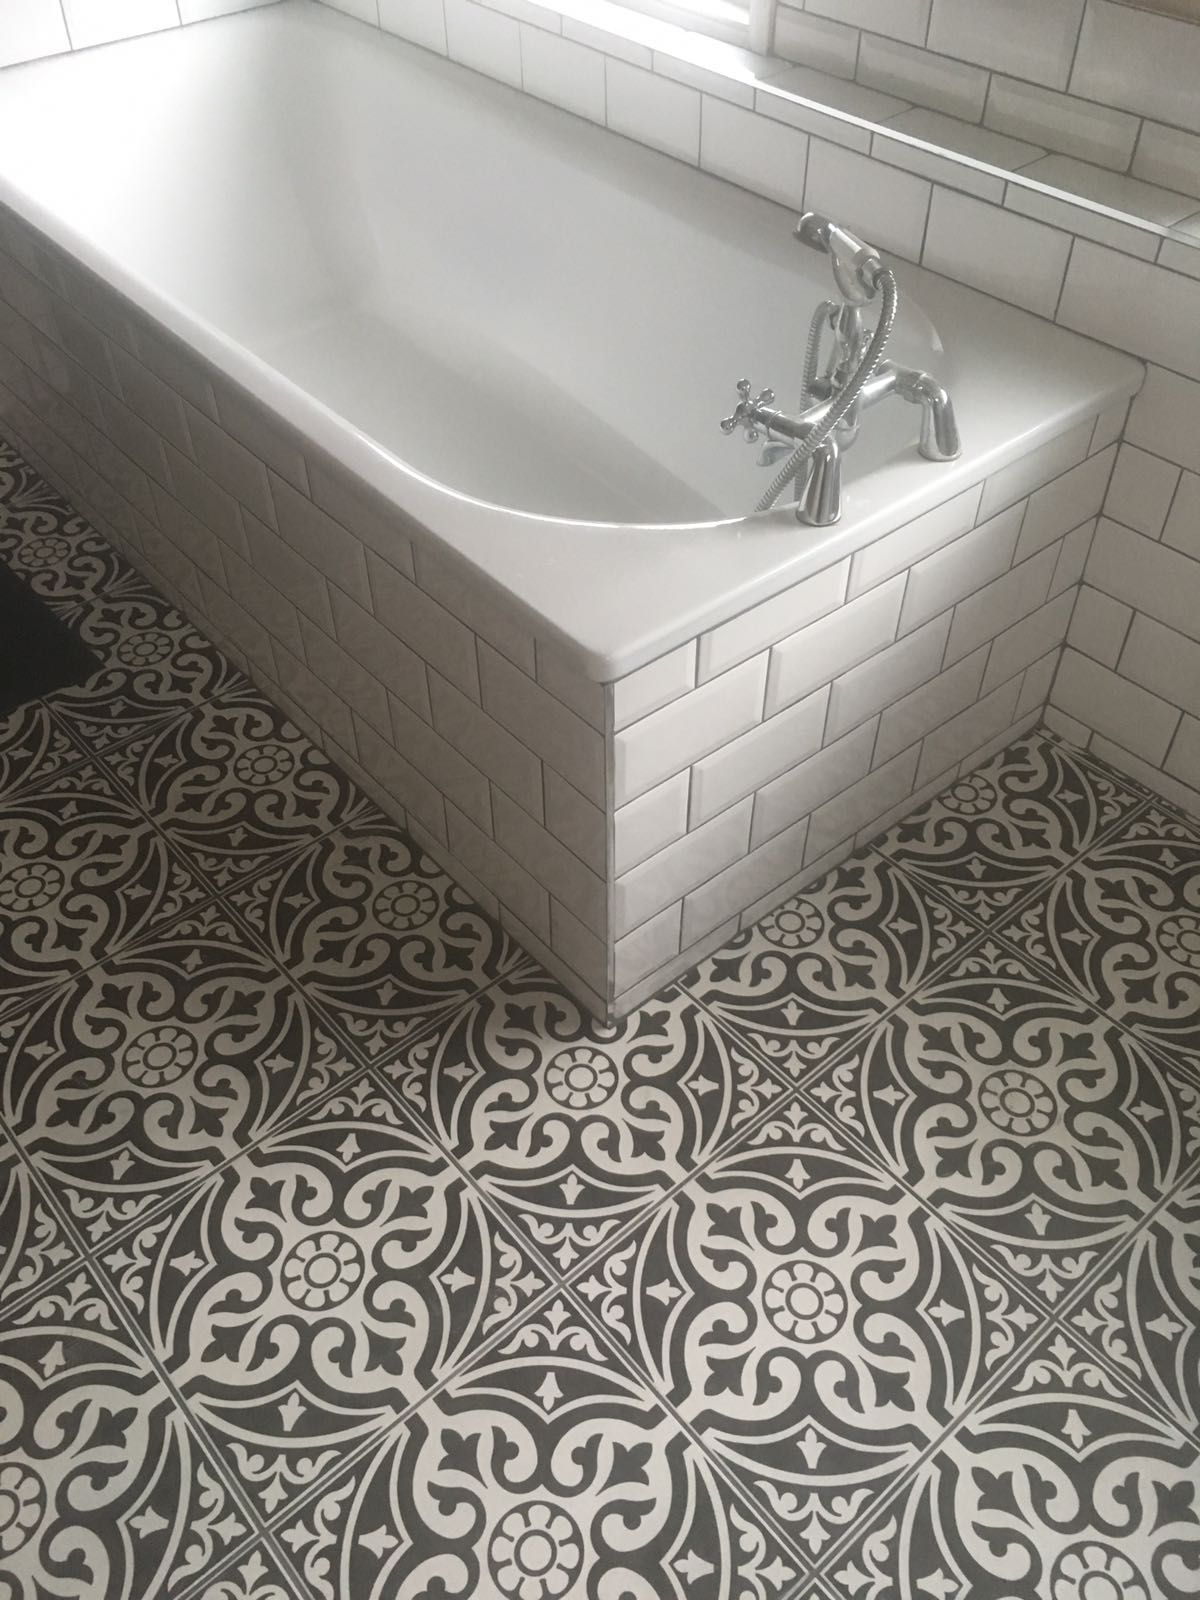 Traditional Black And White Bathroom Tiles White Brick Tiles Repeat Pattern Floor Tiles Grey Grout Bathroom Flooring Bathroom Shower Walls Grey Grout